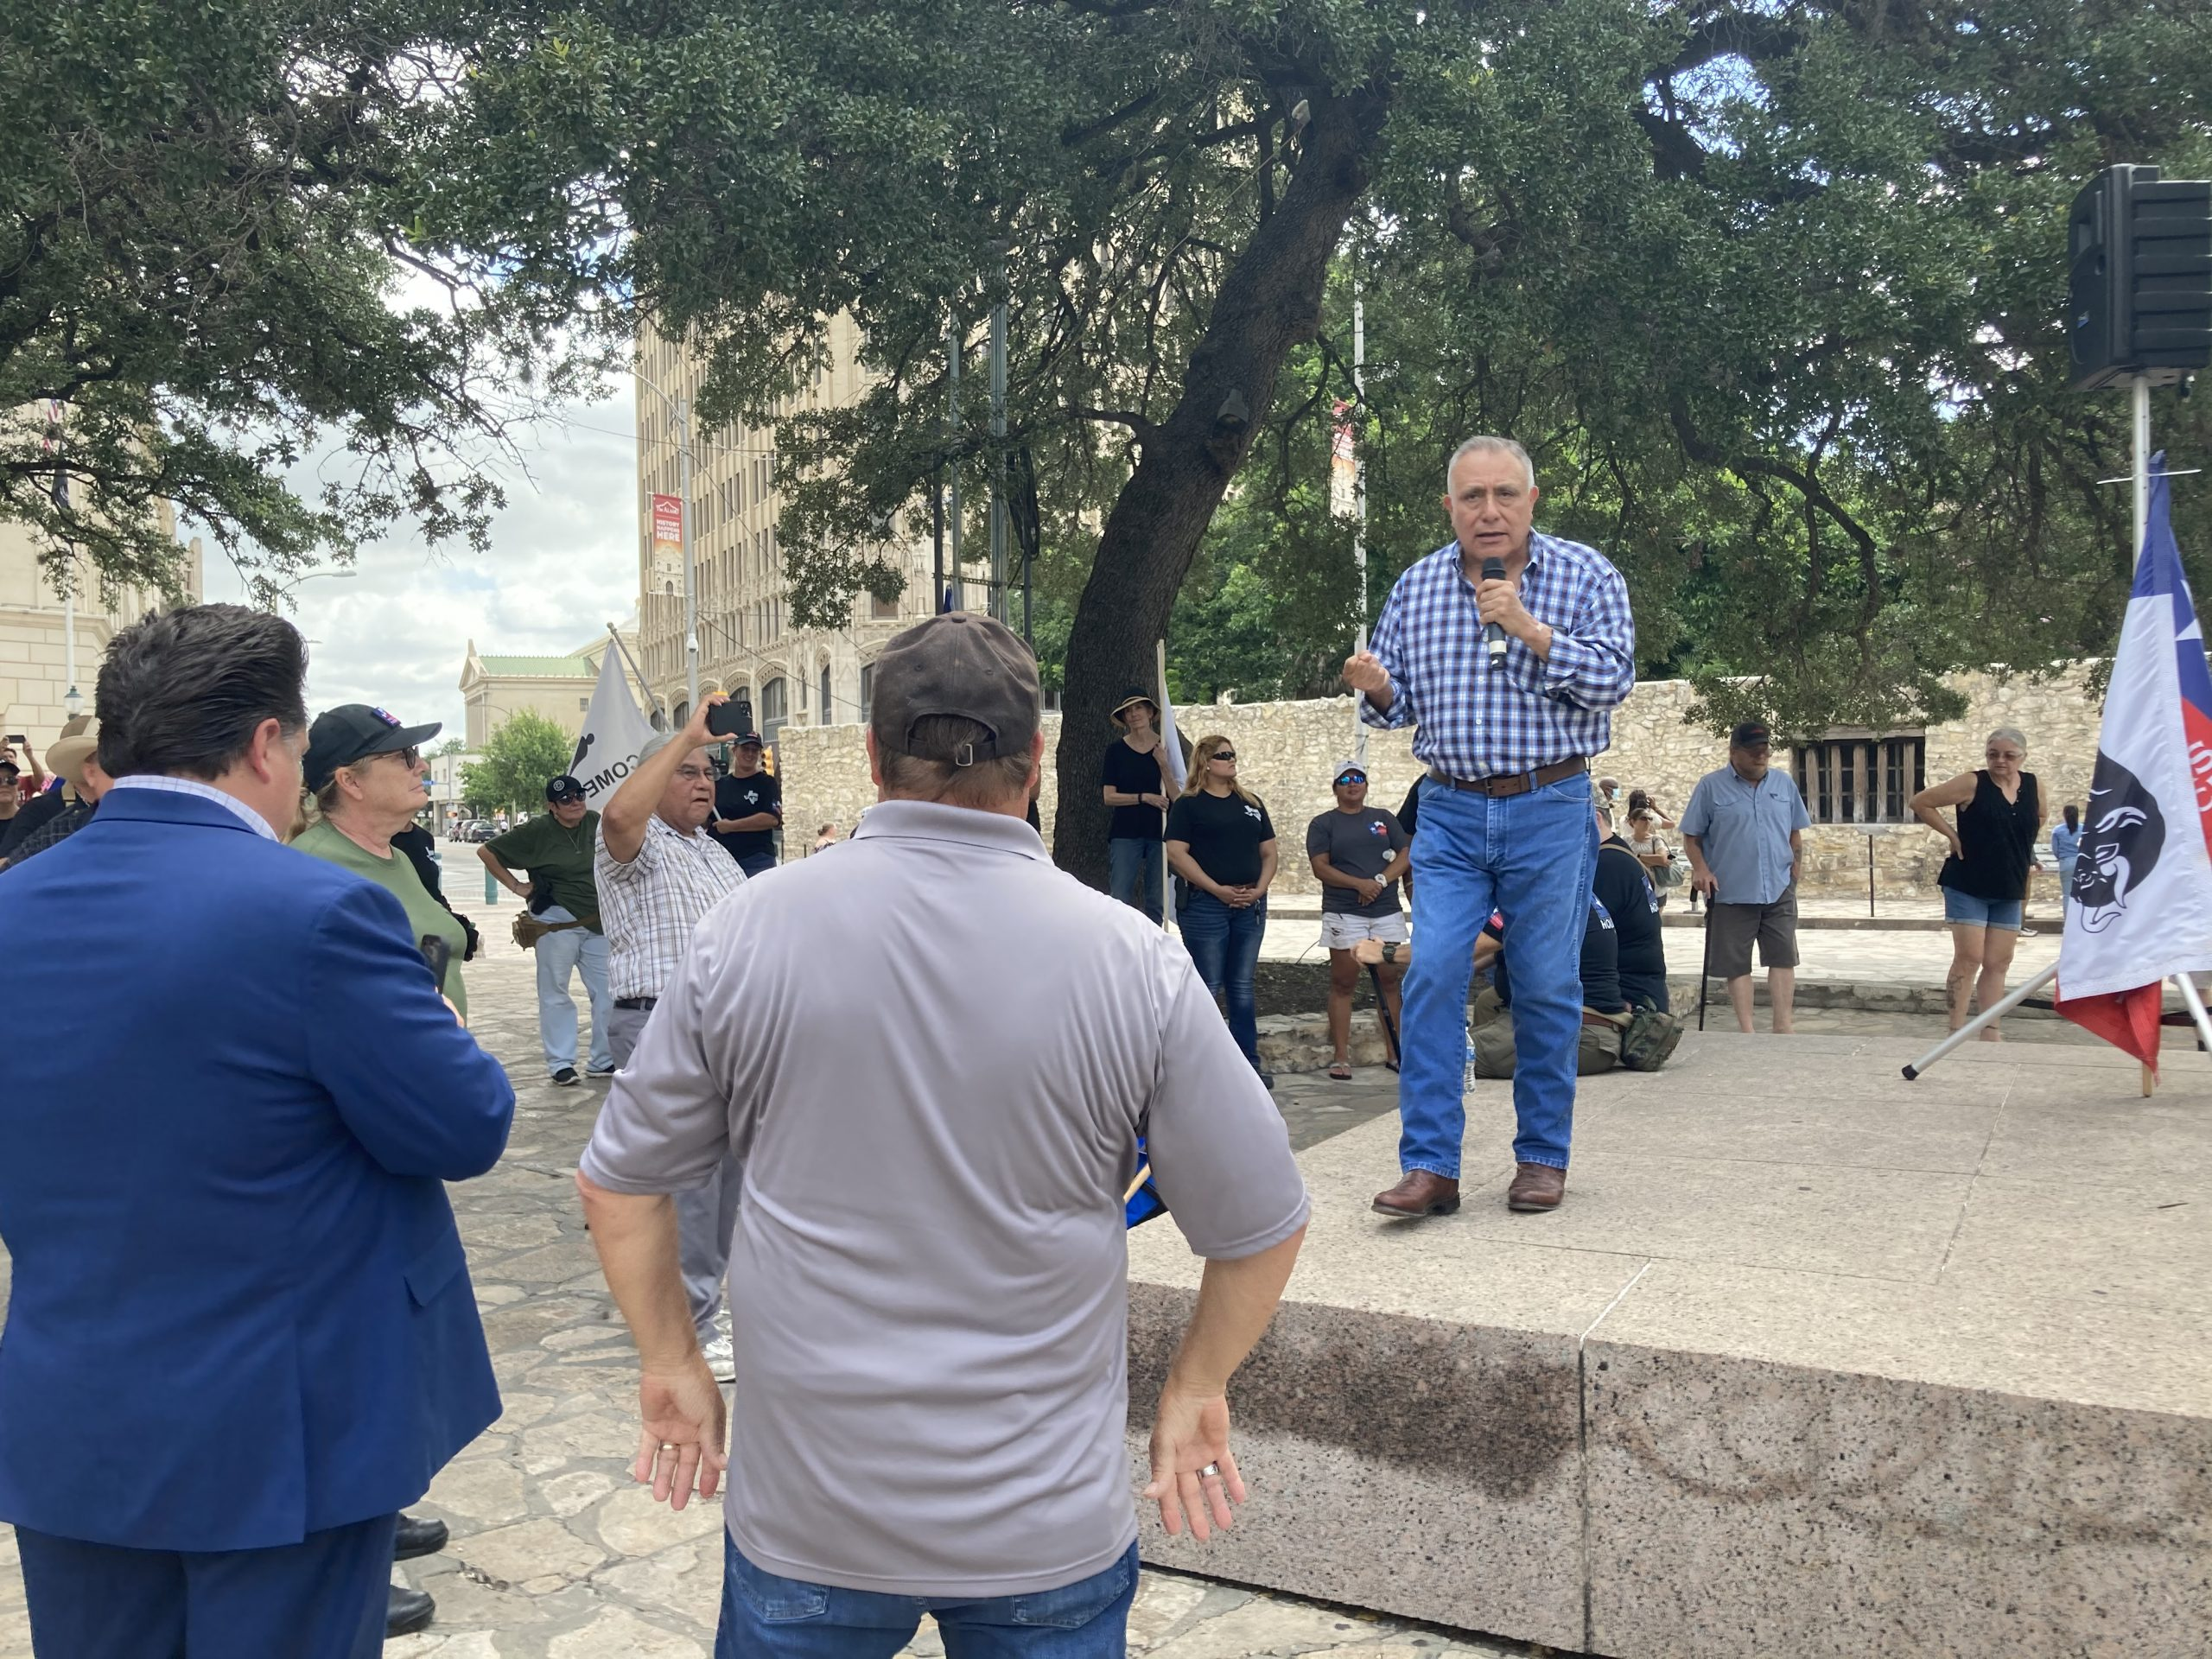 George Rodriguez, a member of This is Texas Freedom Force, protests LULAC's statements on the Alamo at the Cenotaph monument on Friday.